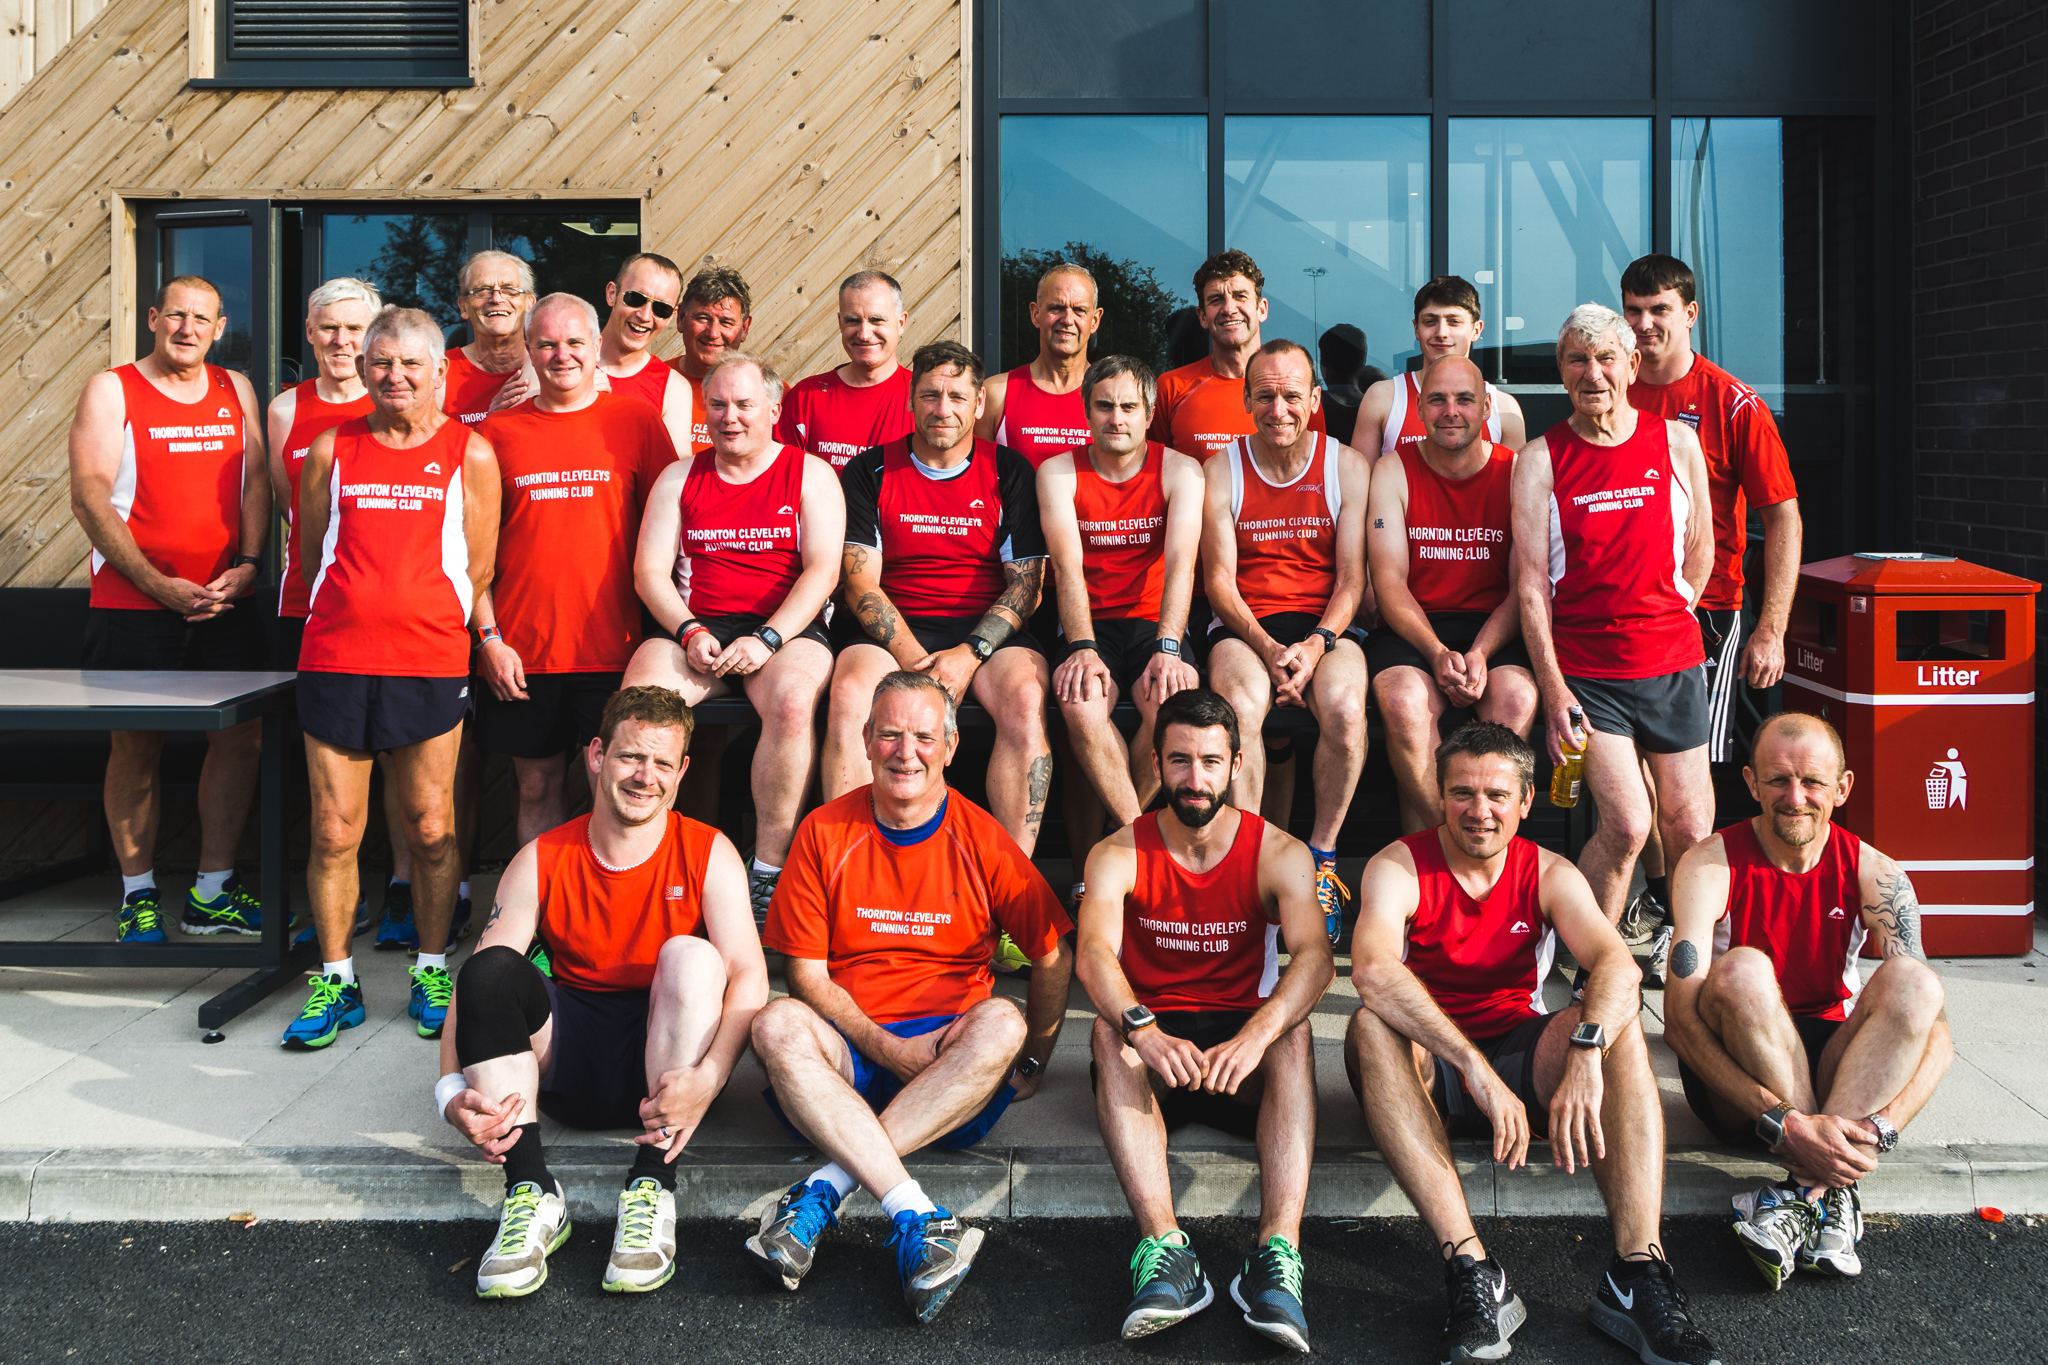 16-06-07 Team photo for Cleveleys and Thornton running club-15.jpg